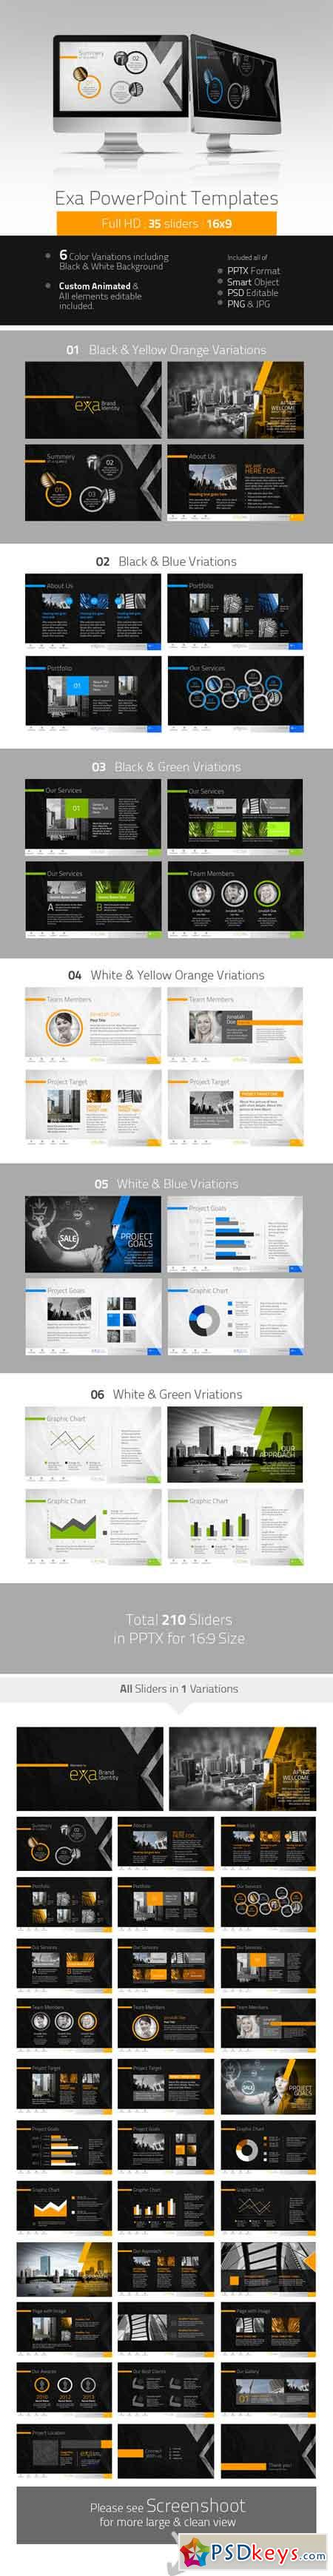 Exa Creative PowerPoint Presentation 4741238